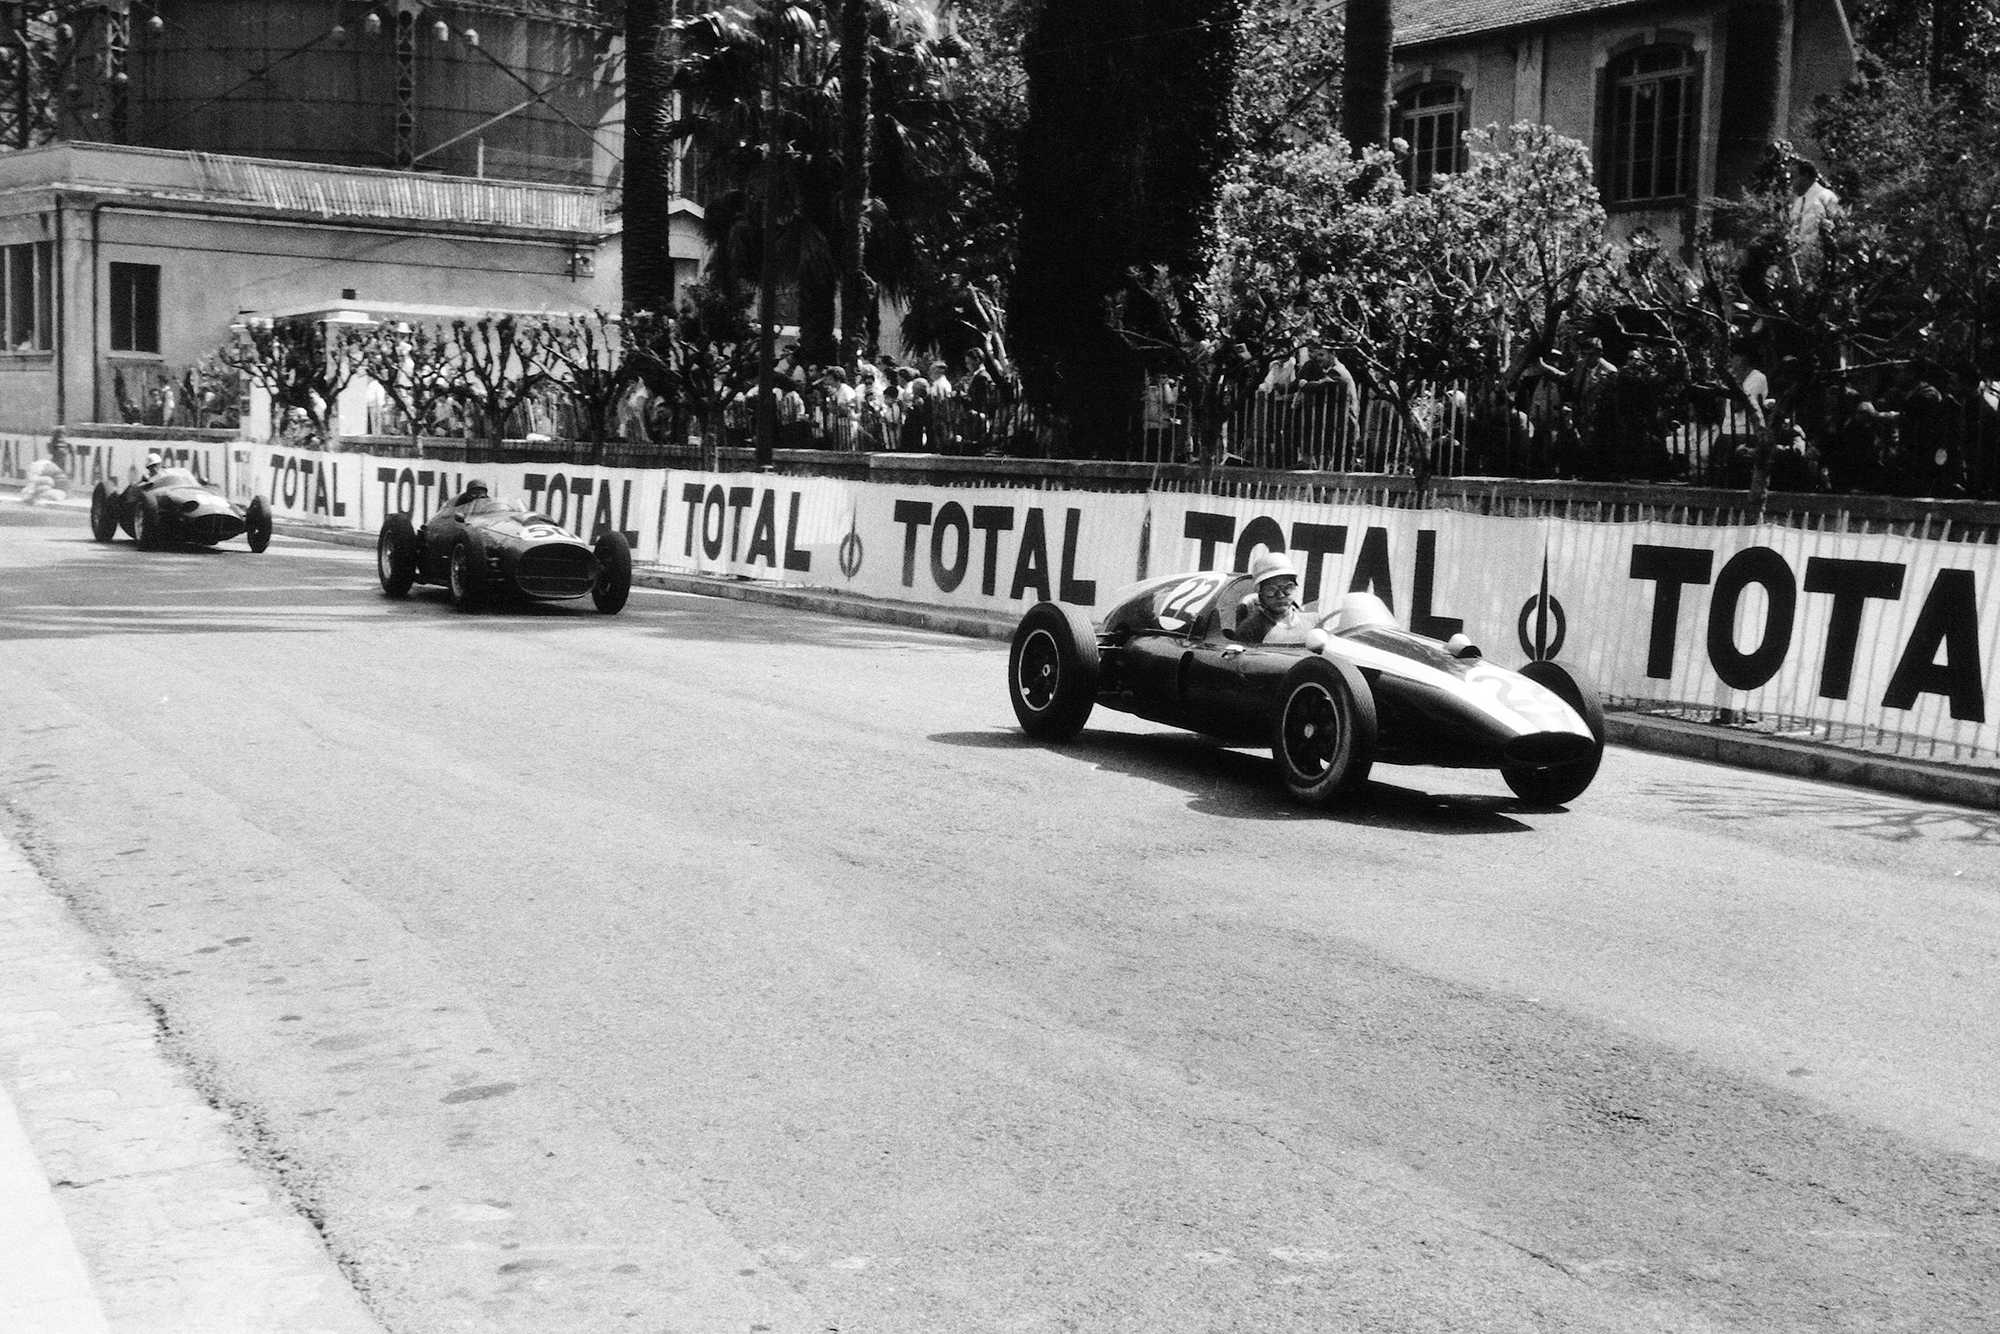 Bruce McLaren in a Cooper T51-Climax leads Tony Brooks in his Ferrari Dino 246 and Harry Schell driving a BRM P25